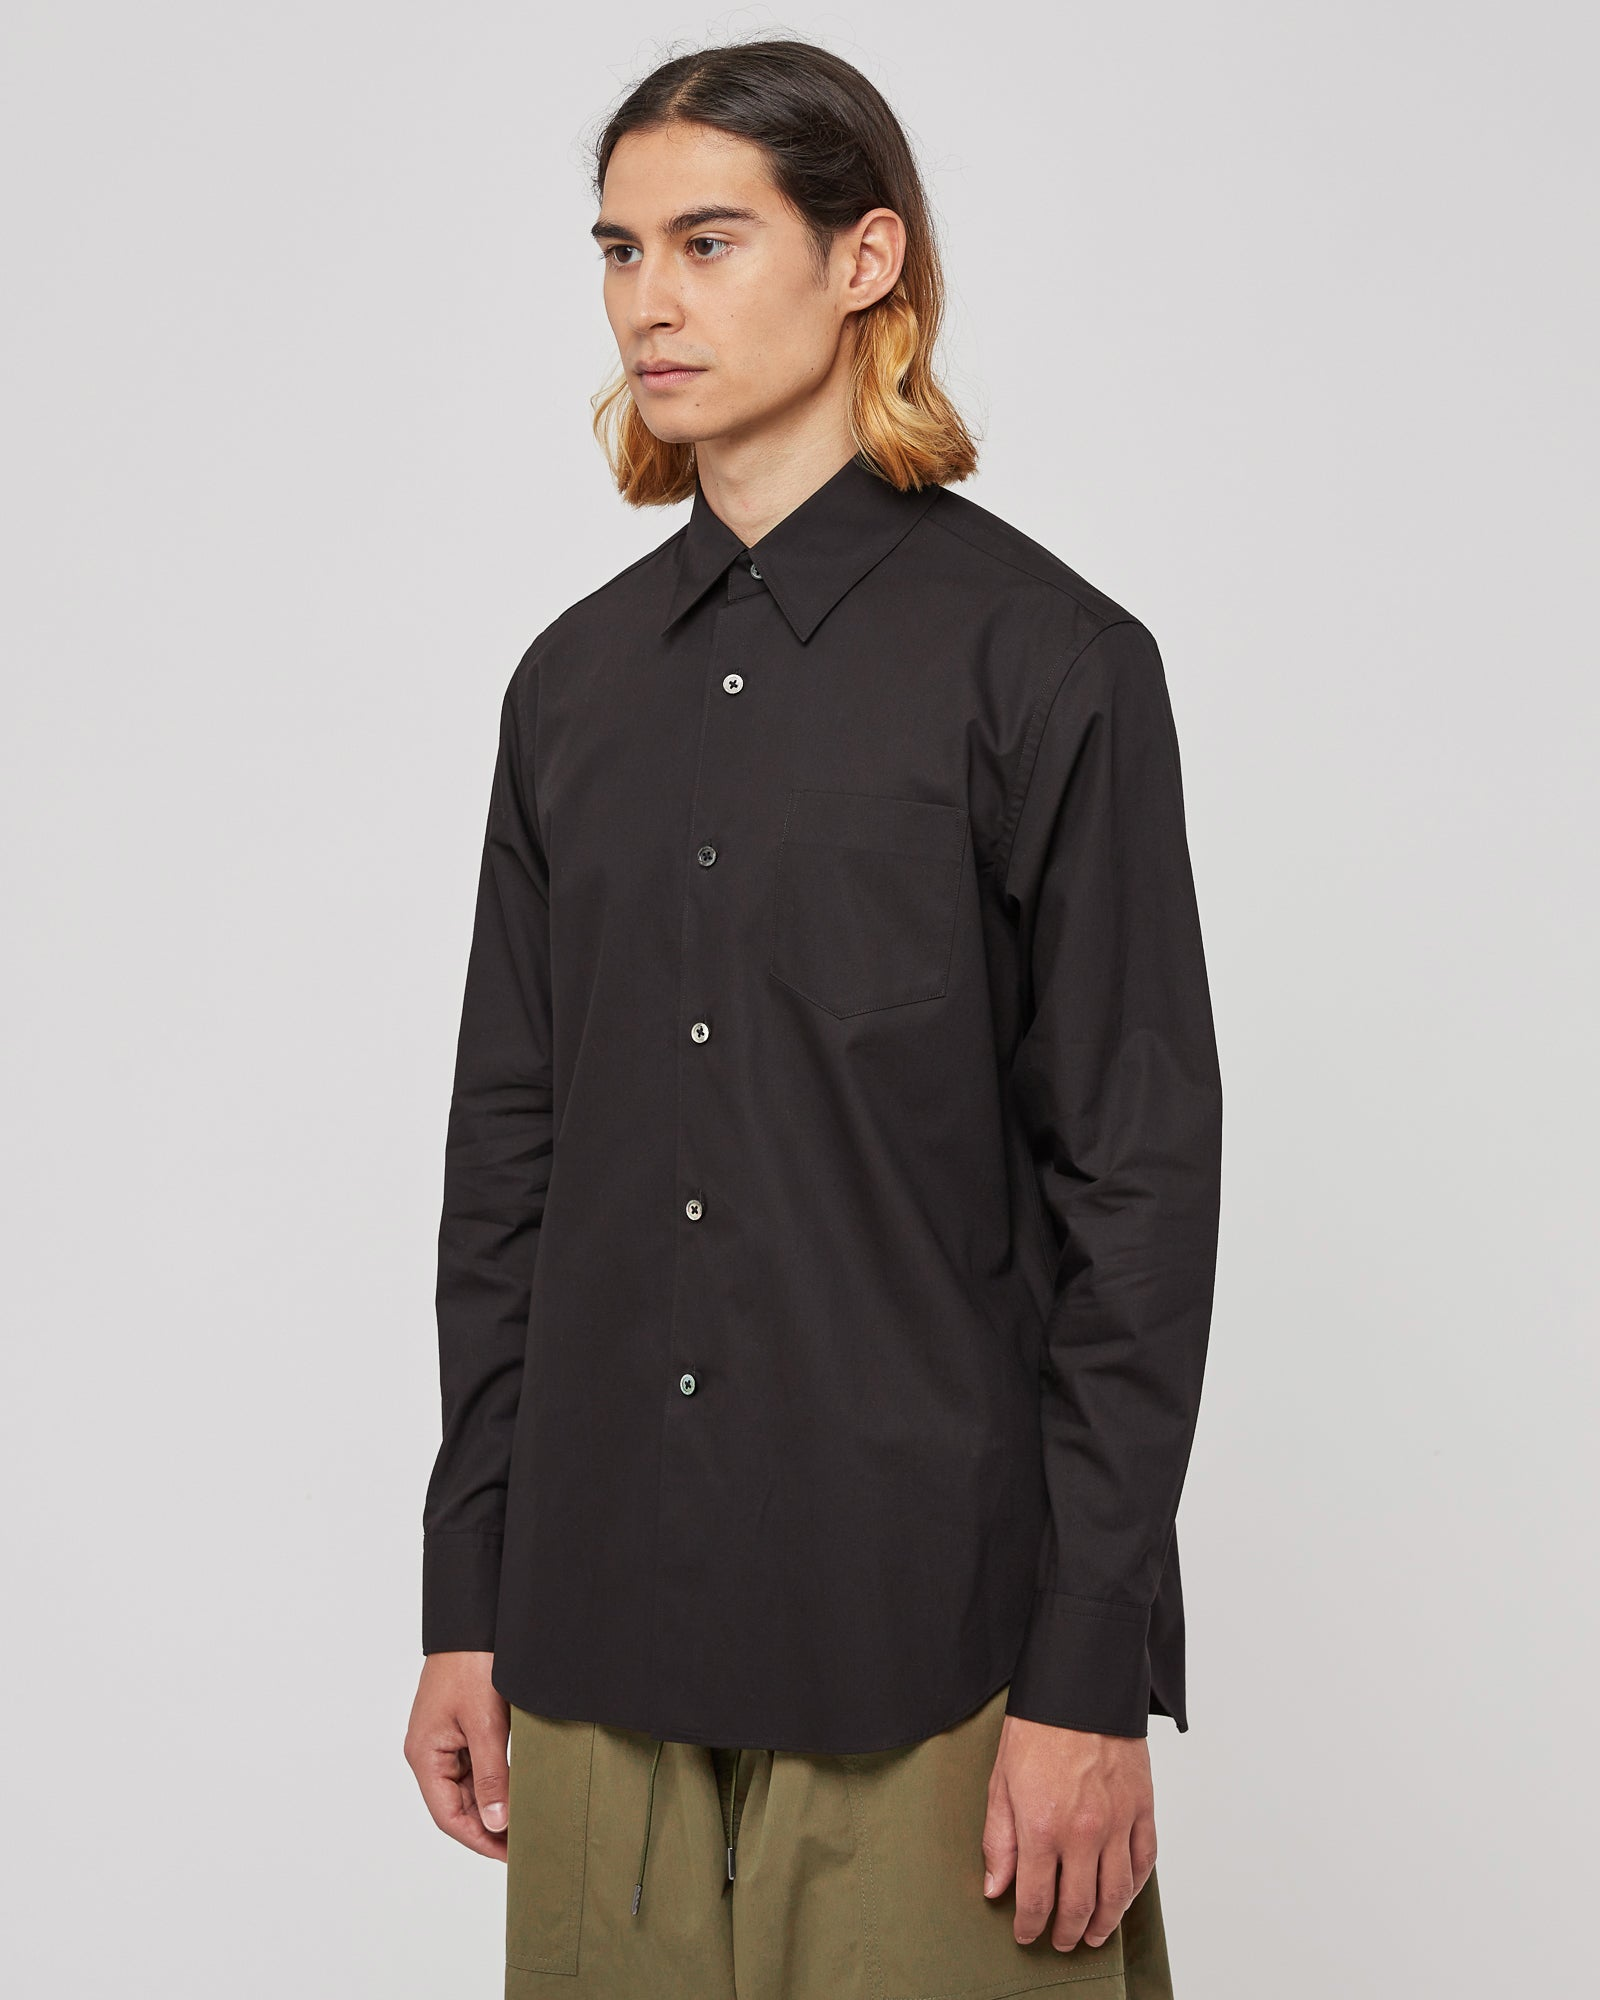 Knife Pleat Button Up Shirt in Black